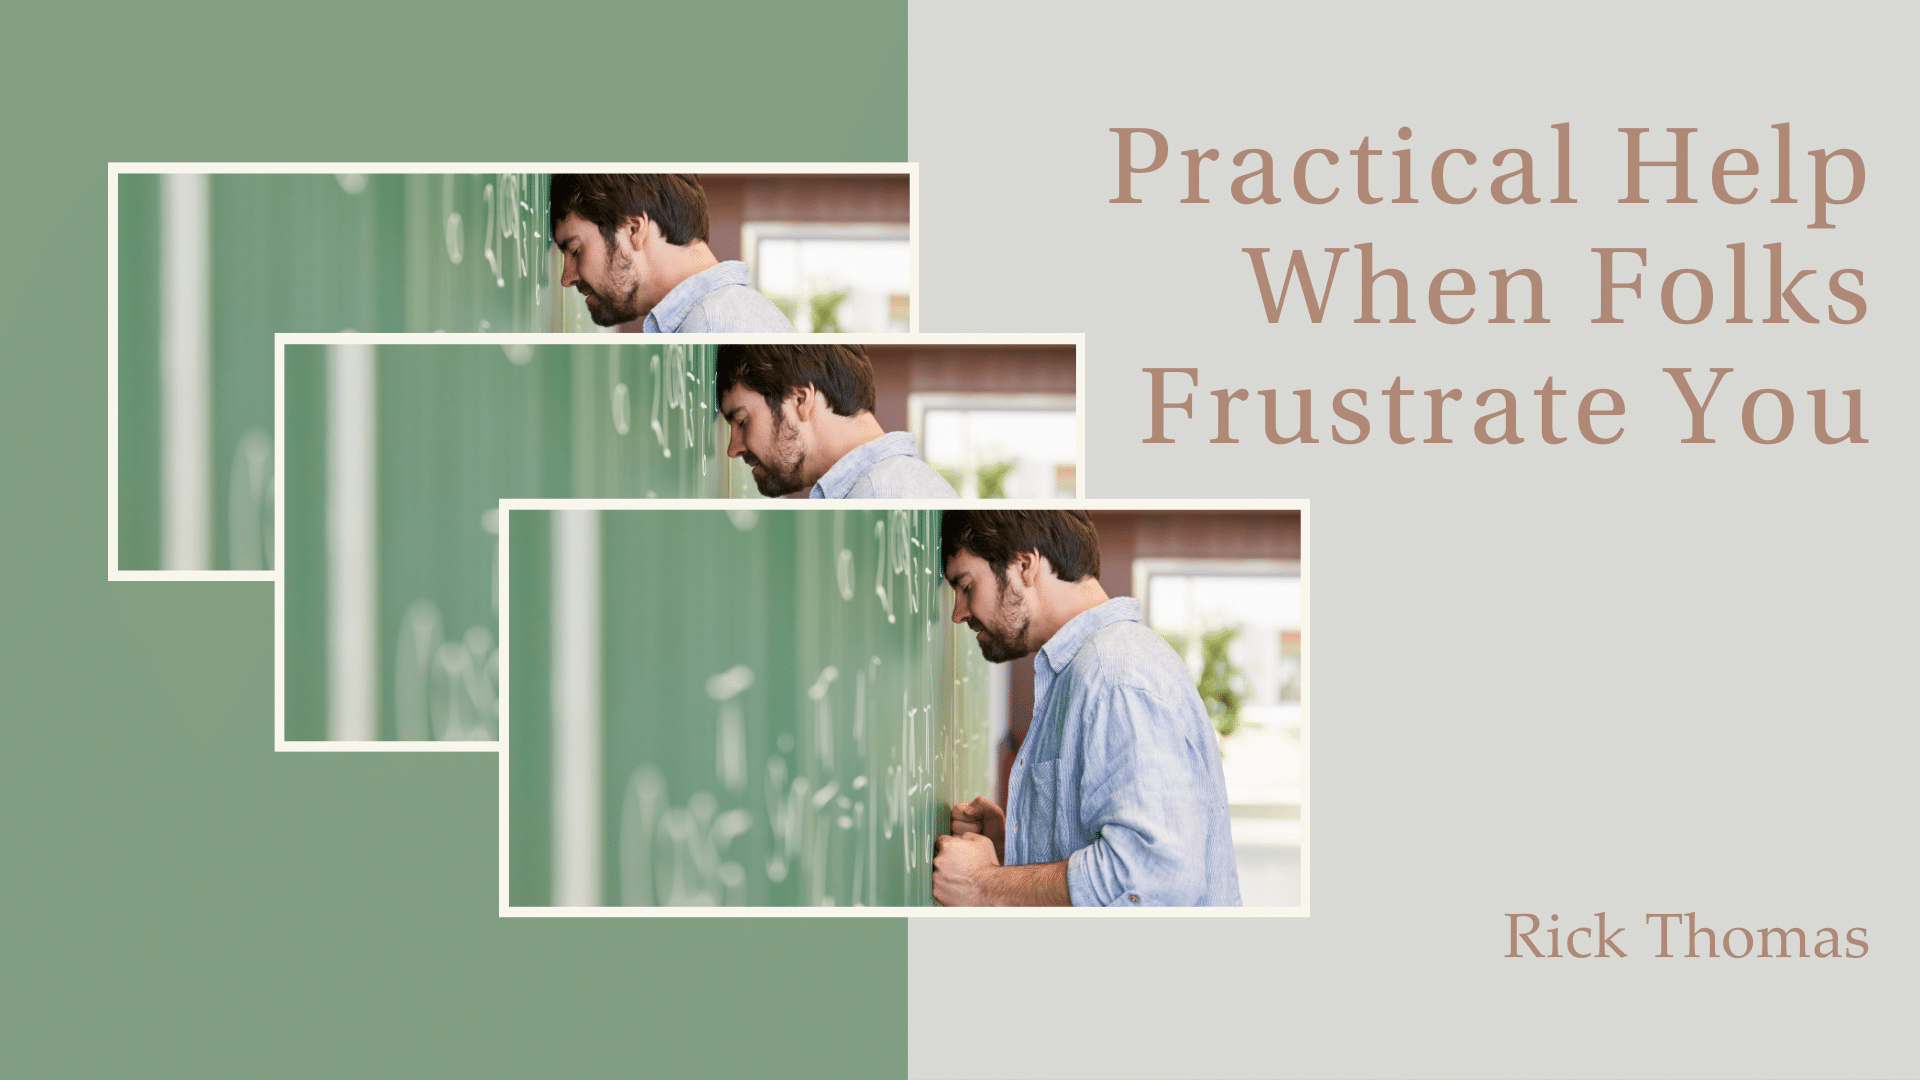 Practical Help When Folks Frustrate You